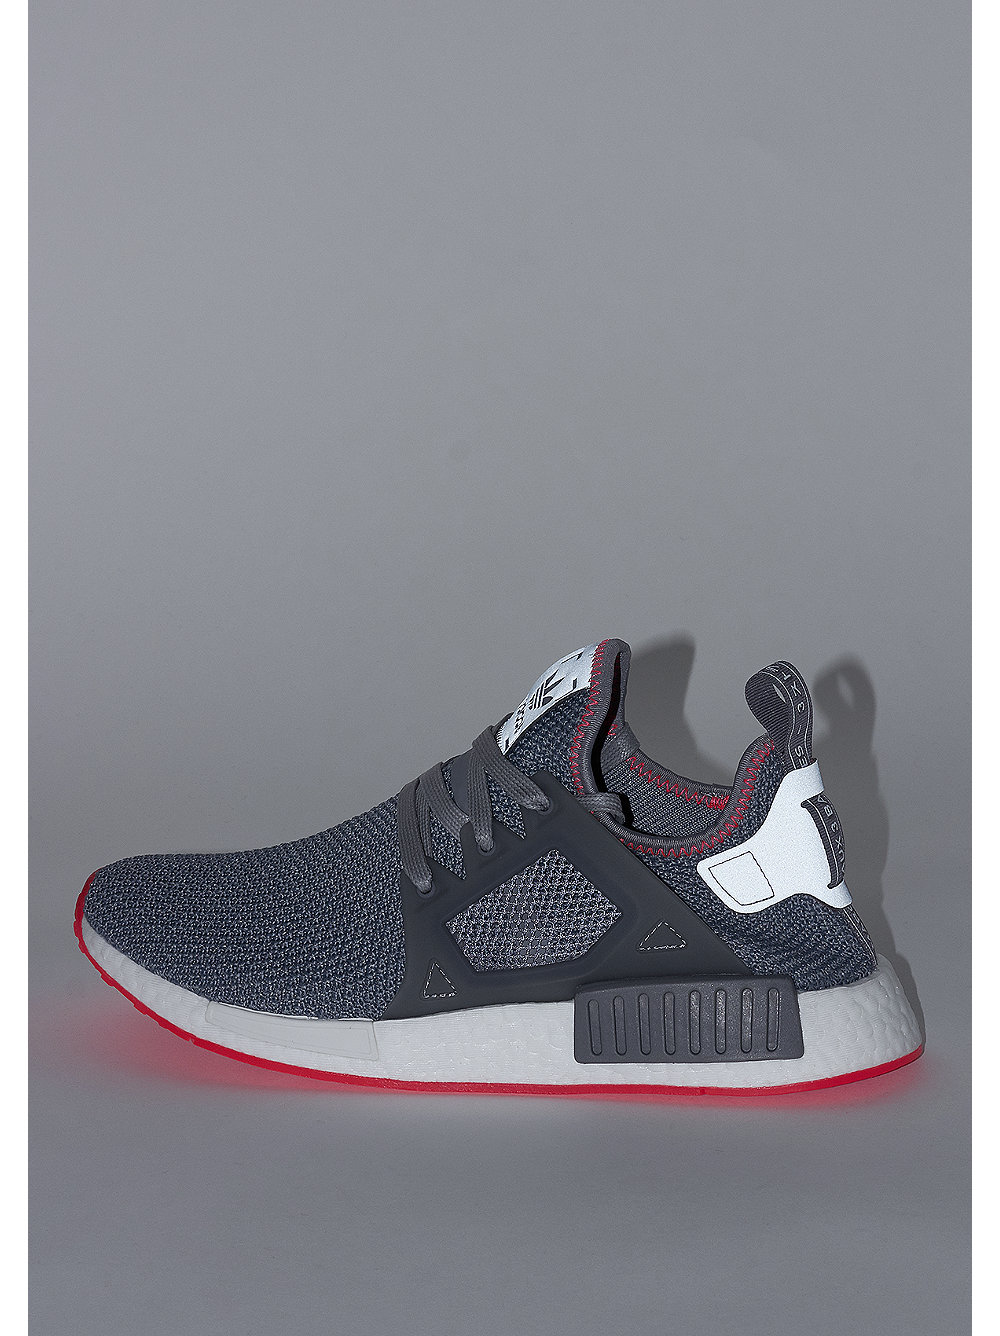 adidas NMD XR1 Colorways, Release Dates